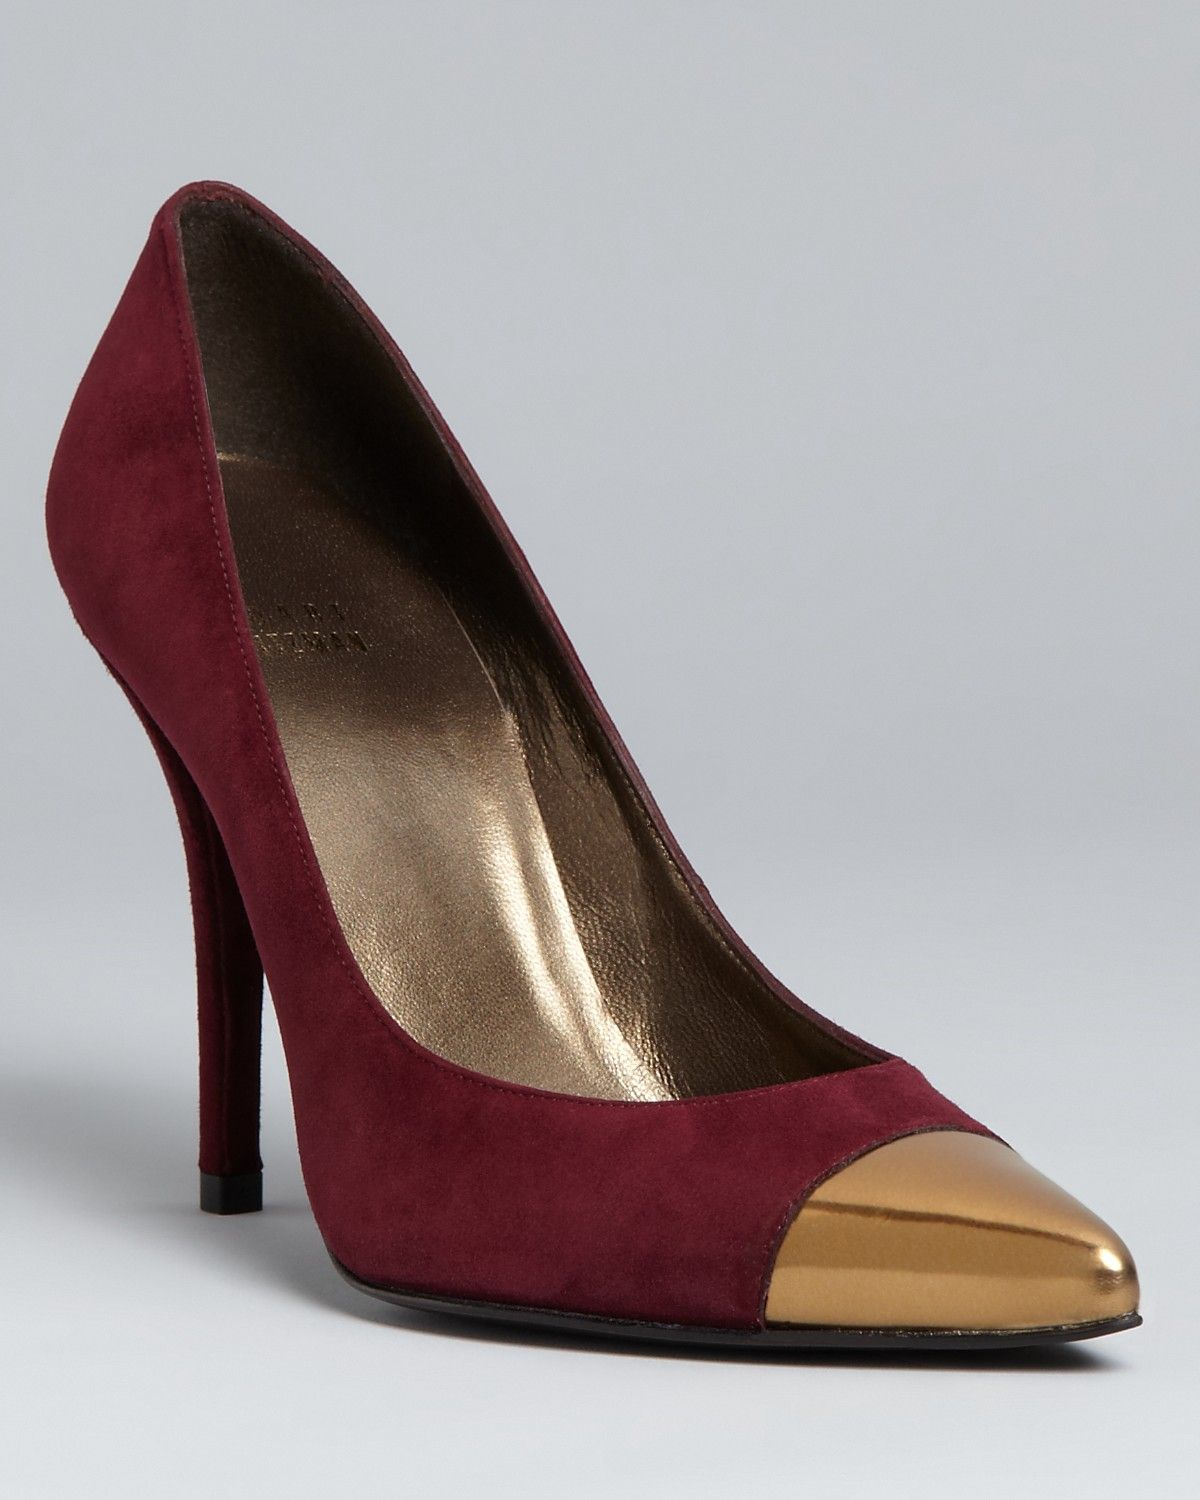 19acce26b Stuart Weitzman||pointed toe pumps | My Style | Shoes, Pointed toe ...